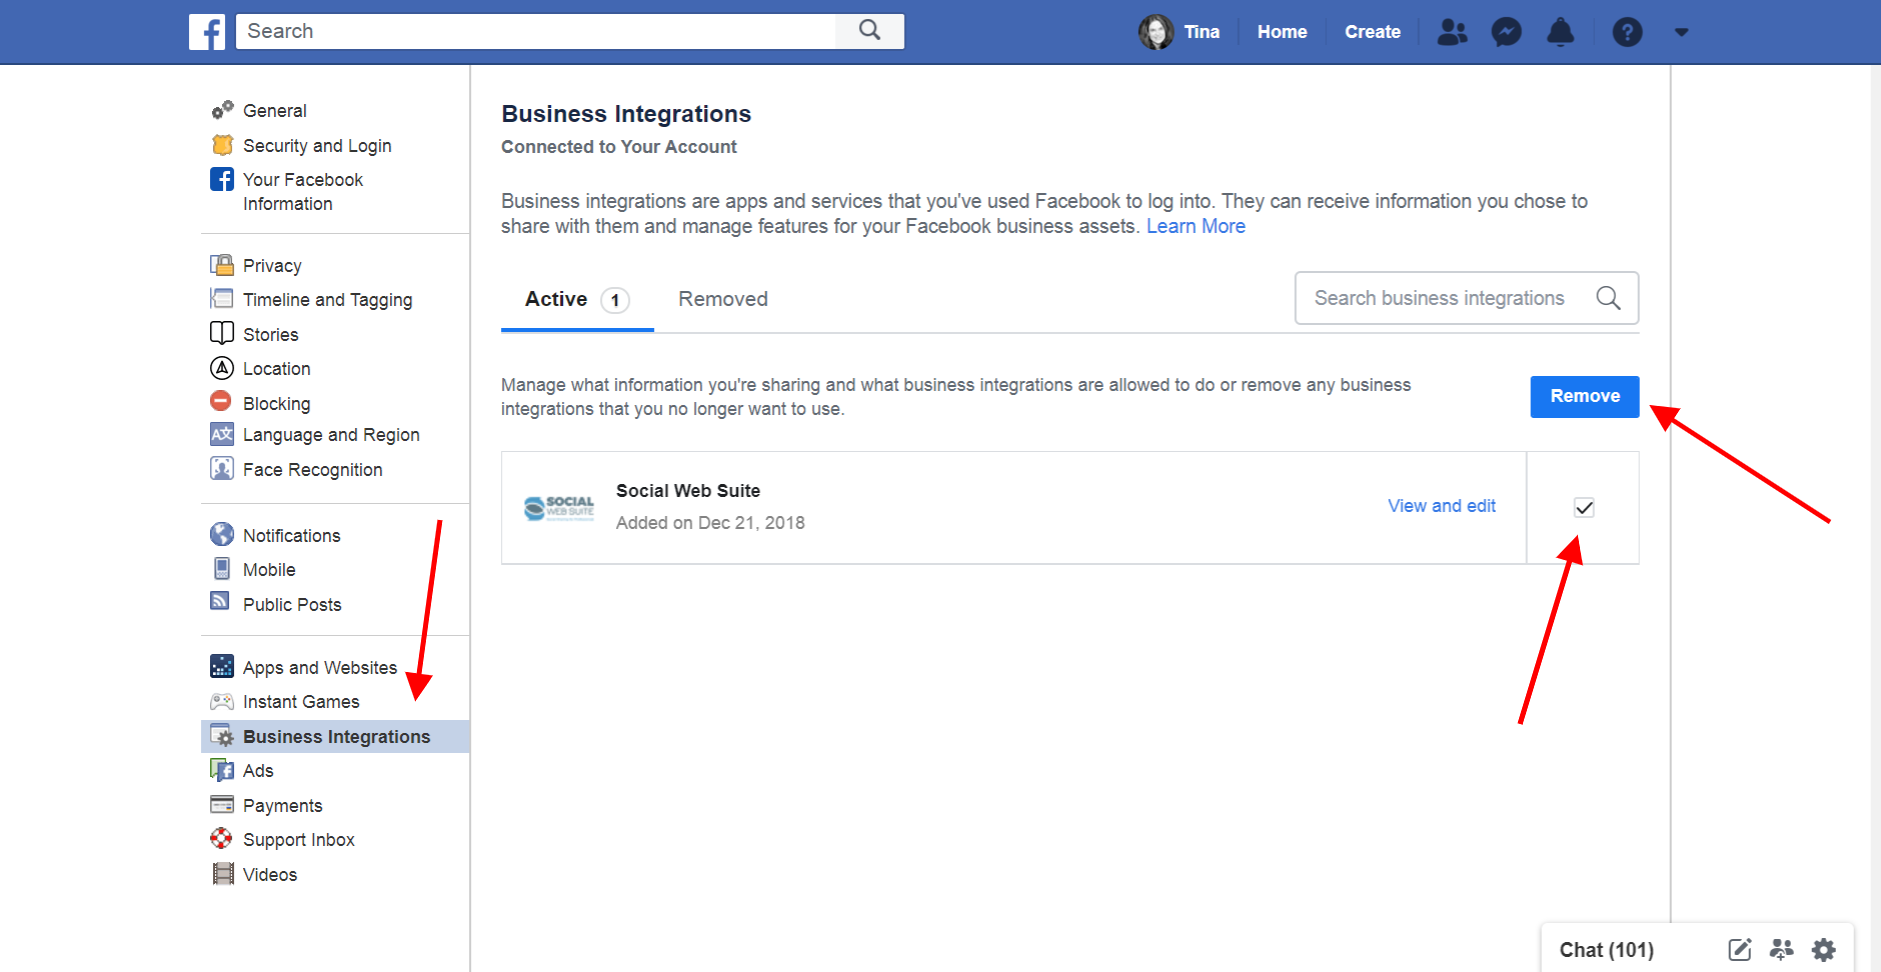 Remove Social Web Suite from Facebook